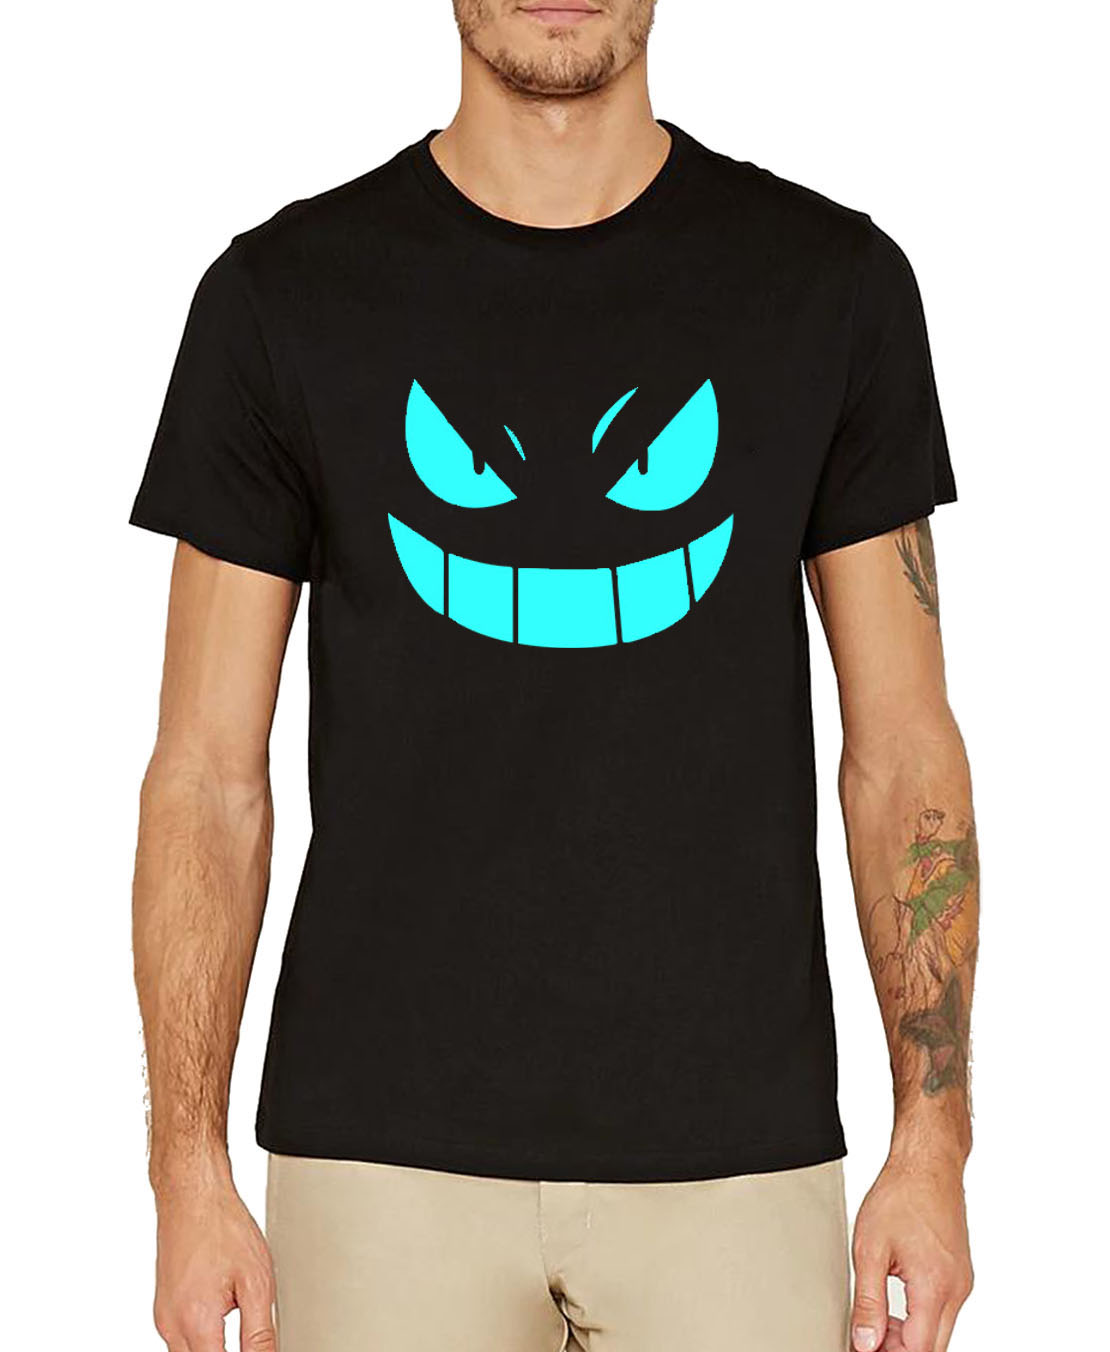 noctilucous cartoon clothing Men 2019 fashion tee shirt homme Anime summer high quality fitness camisetas cotton t-shirts S-3XL